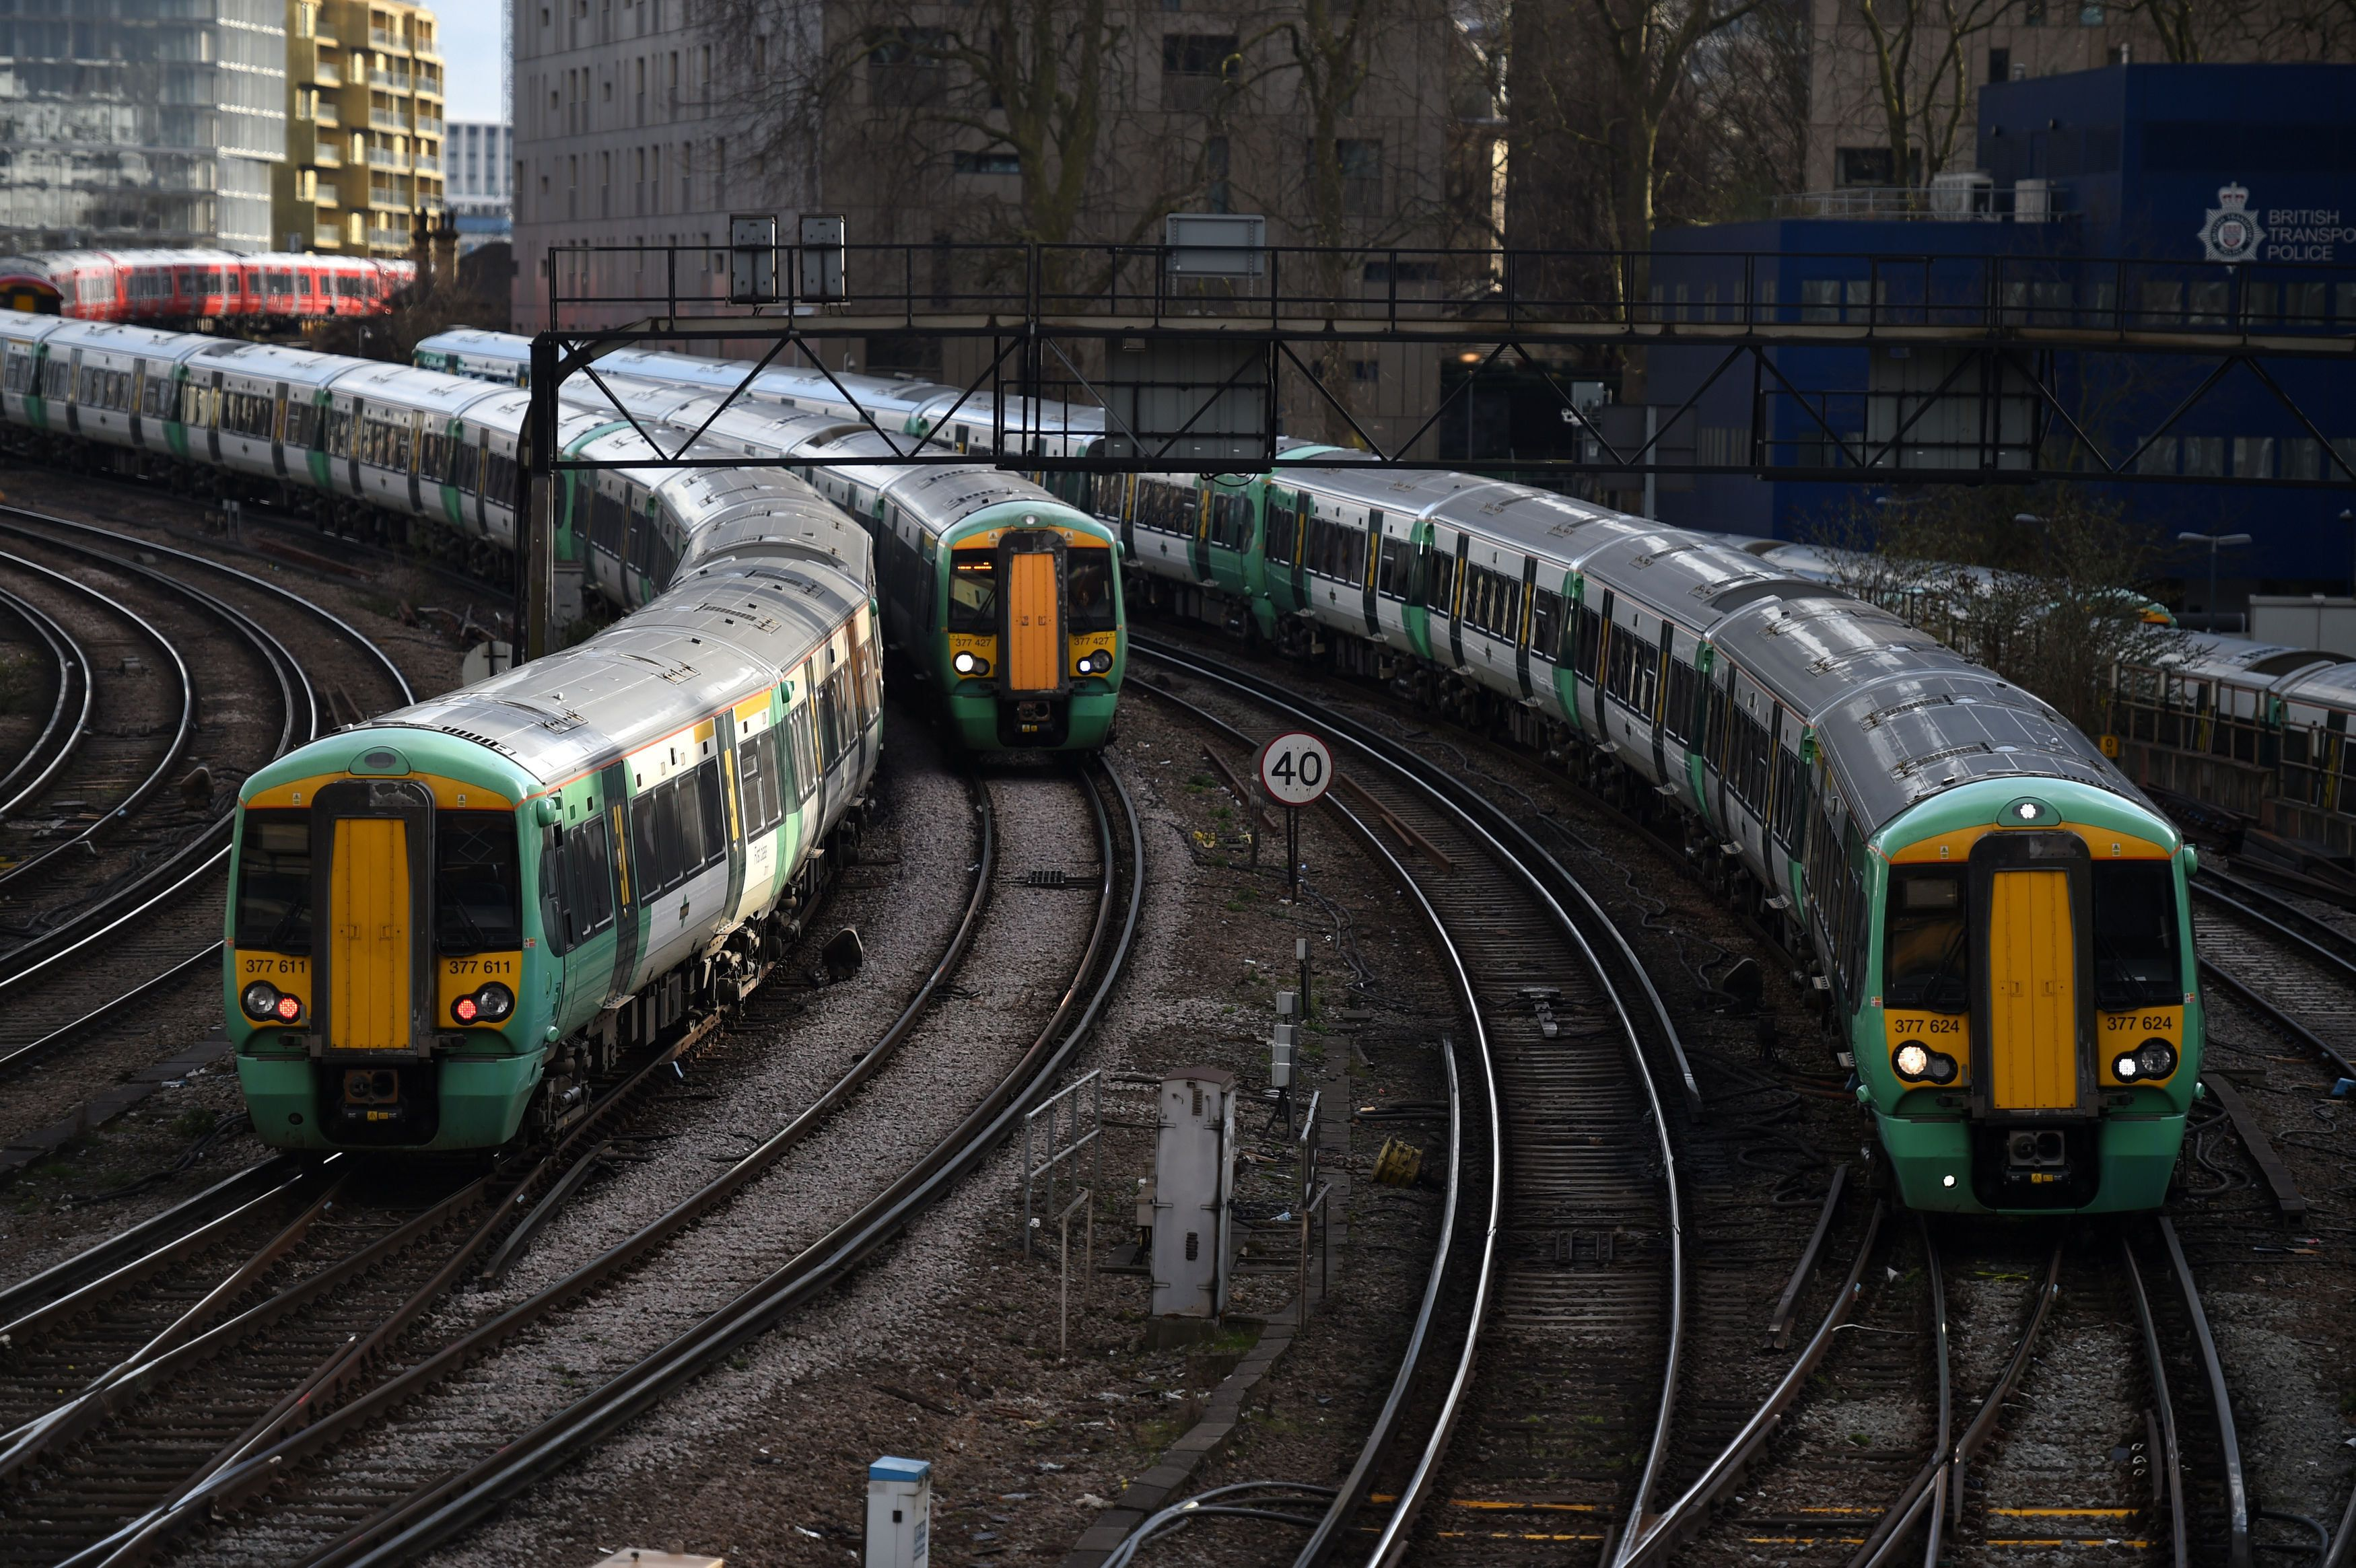 Deserted Stations As 2,000 Rail Workers Walk Out In Staffing Dispute